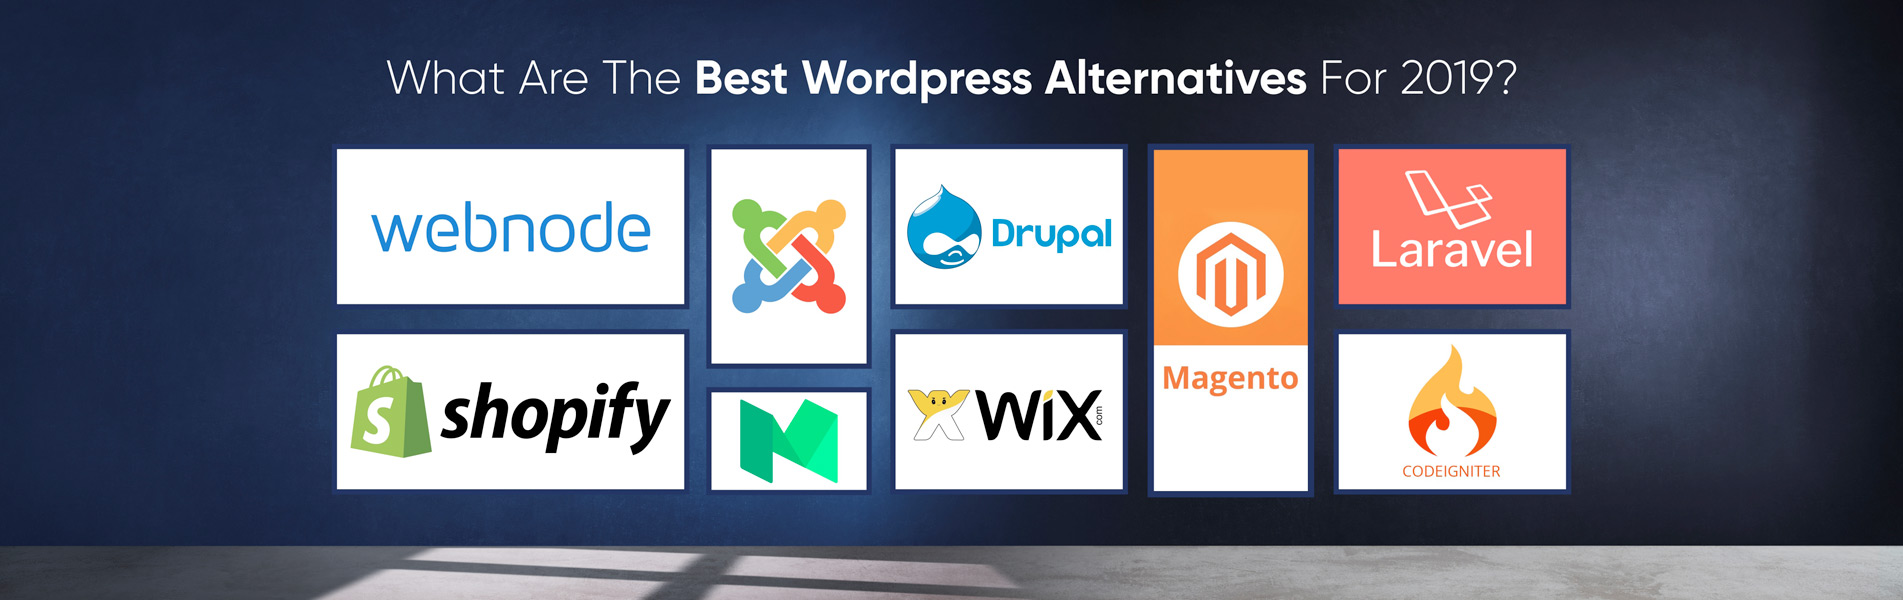 What are the Best Wordpress Alternatives for 2019